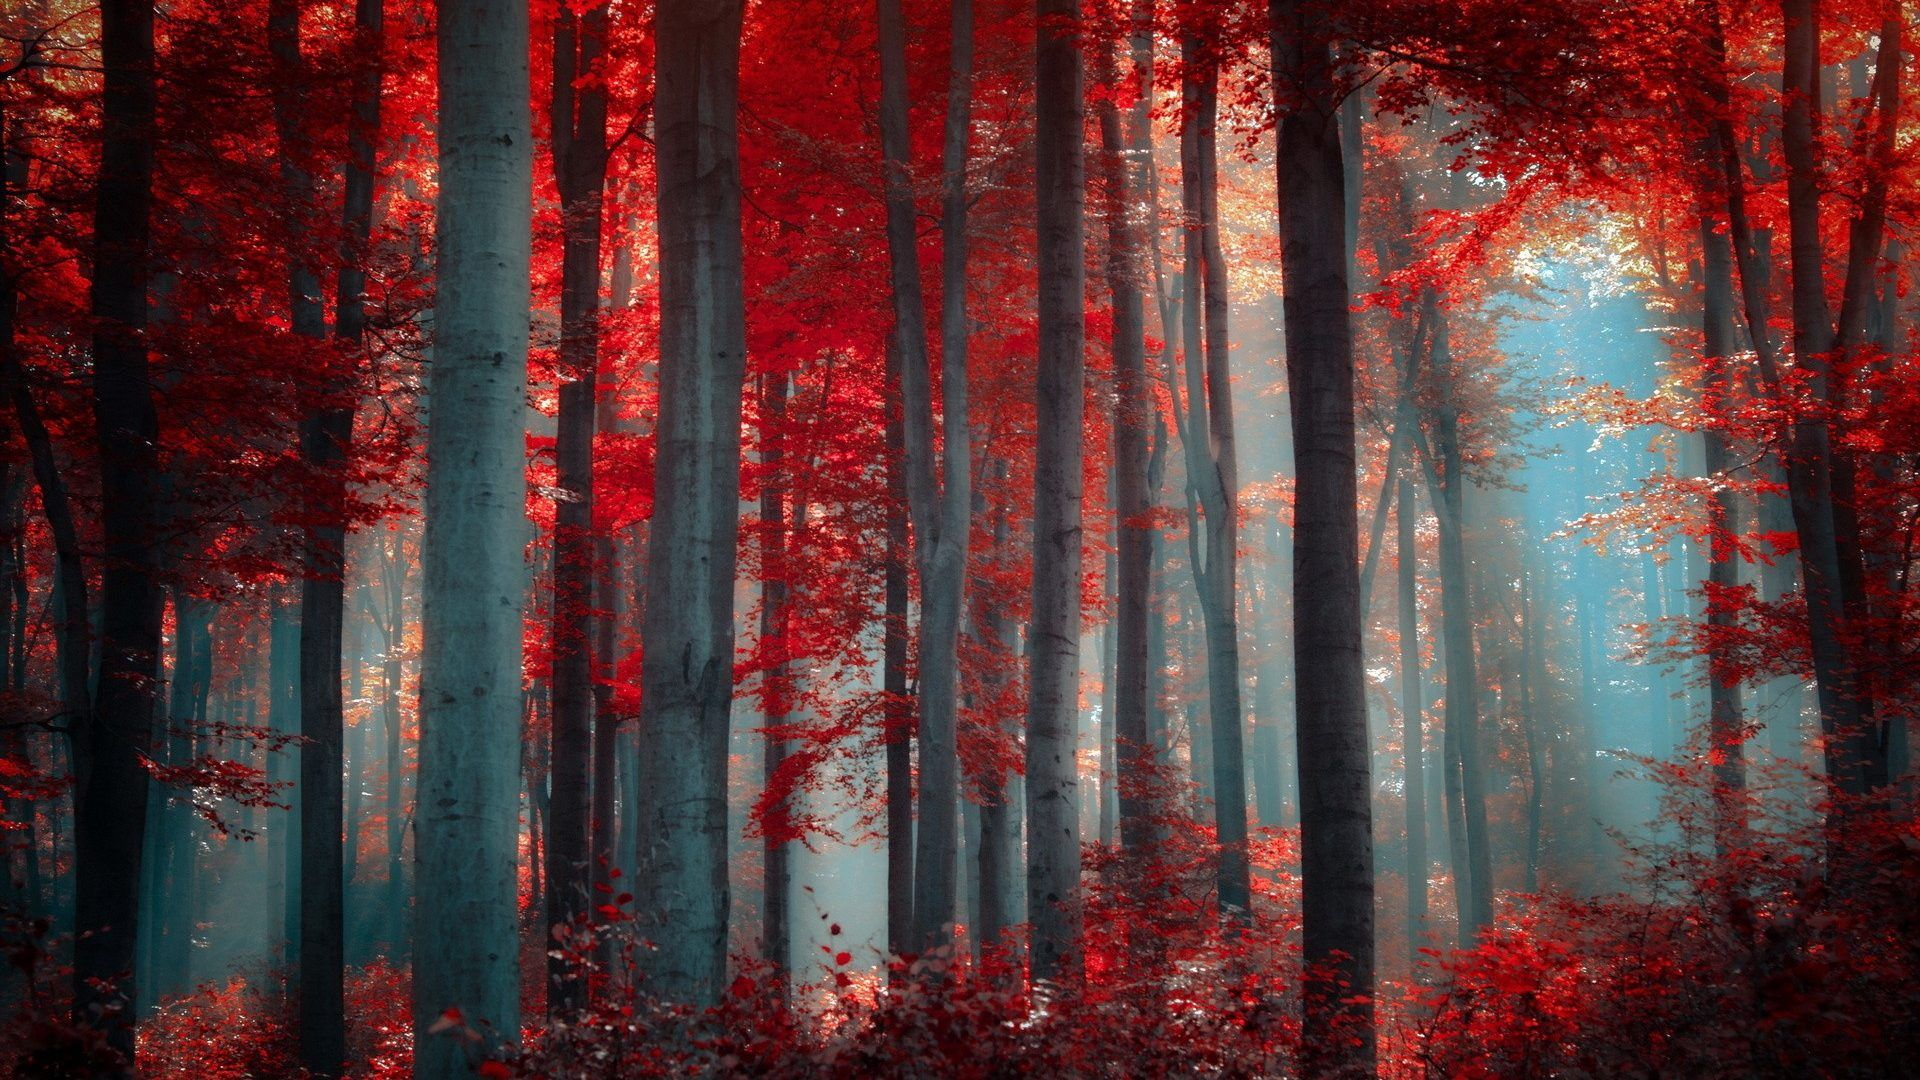 Forest Red Autumn Colorful Beije Amazing Branches Sunrise High Definition Scene Woods Forests Cool Scenery Seasons Leaf Leave Magical Tree Tree Art Nature Tree